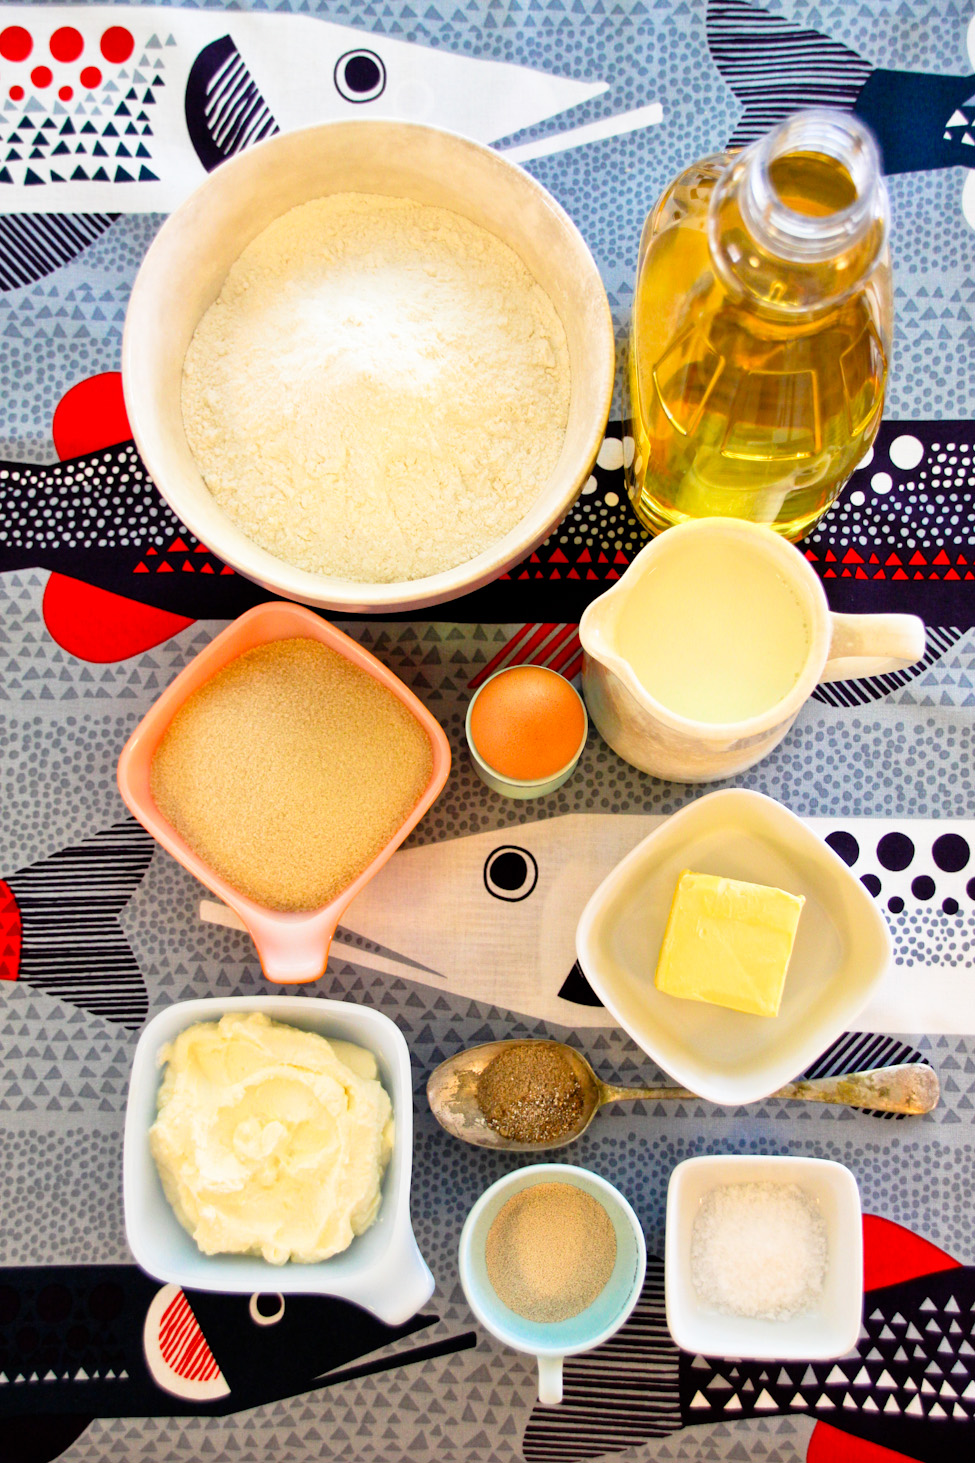 Ingredients for Munkki :: The Scandinavian Baker